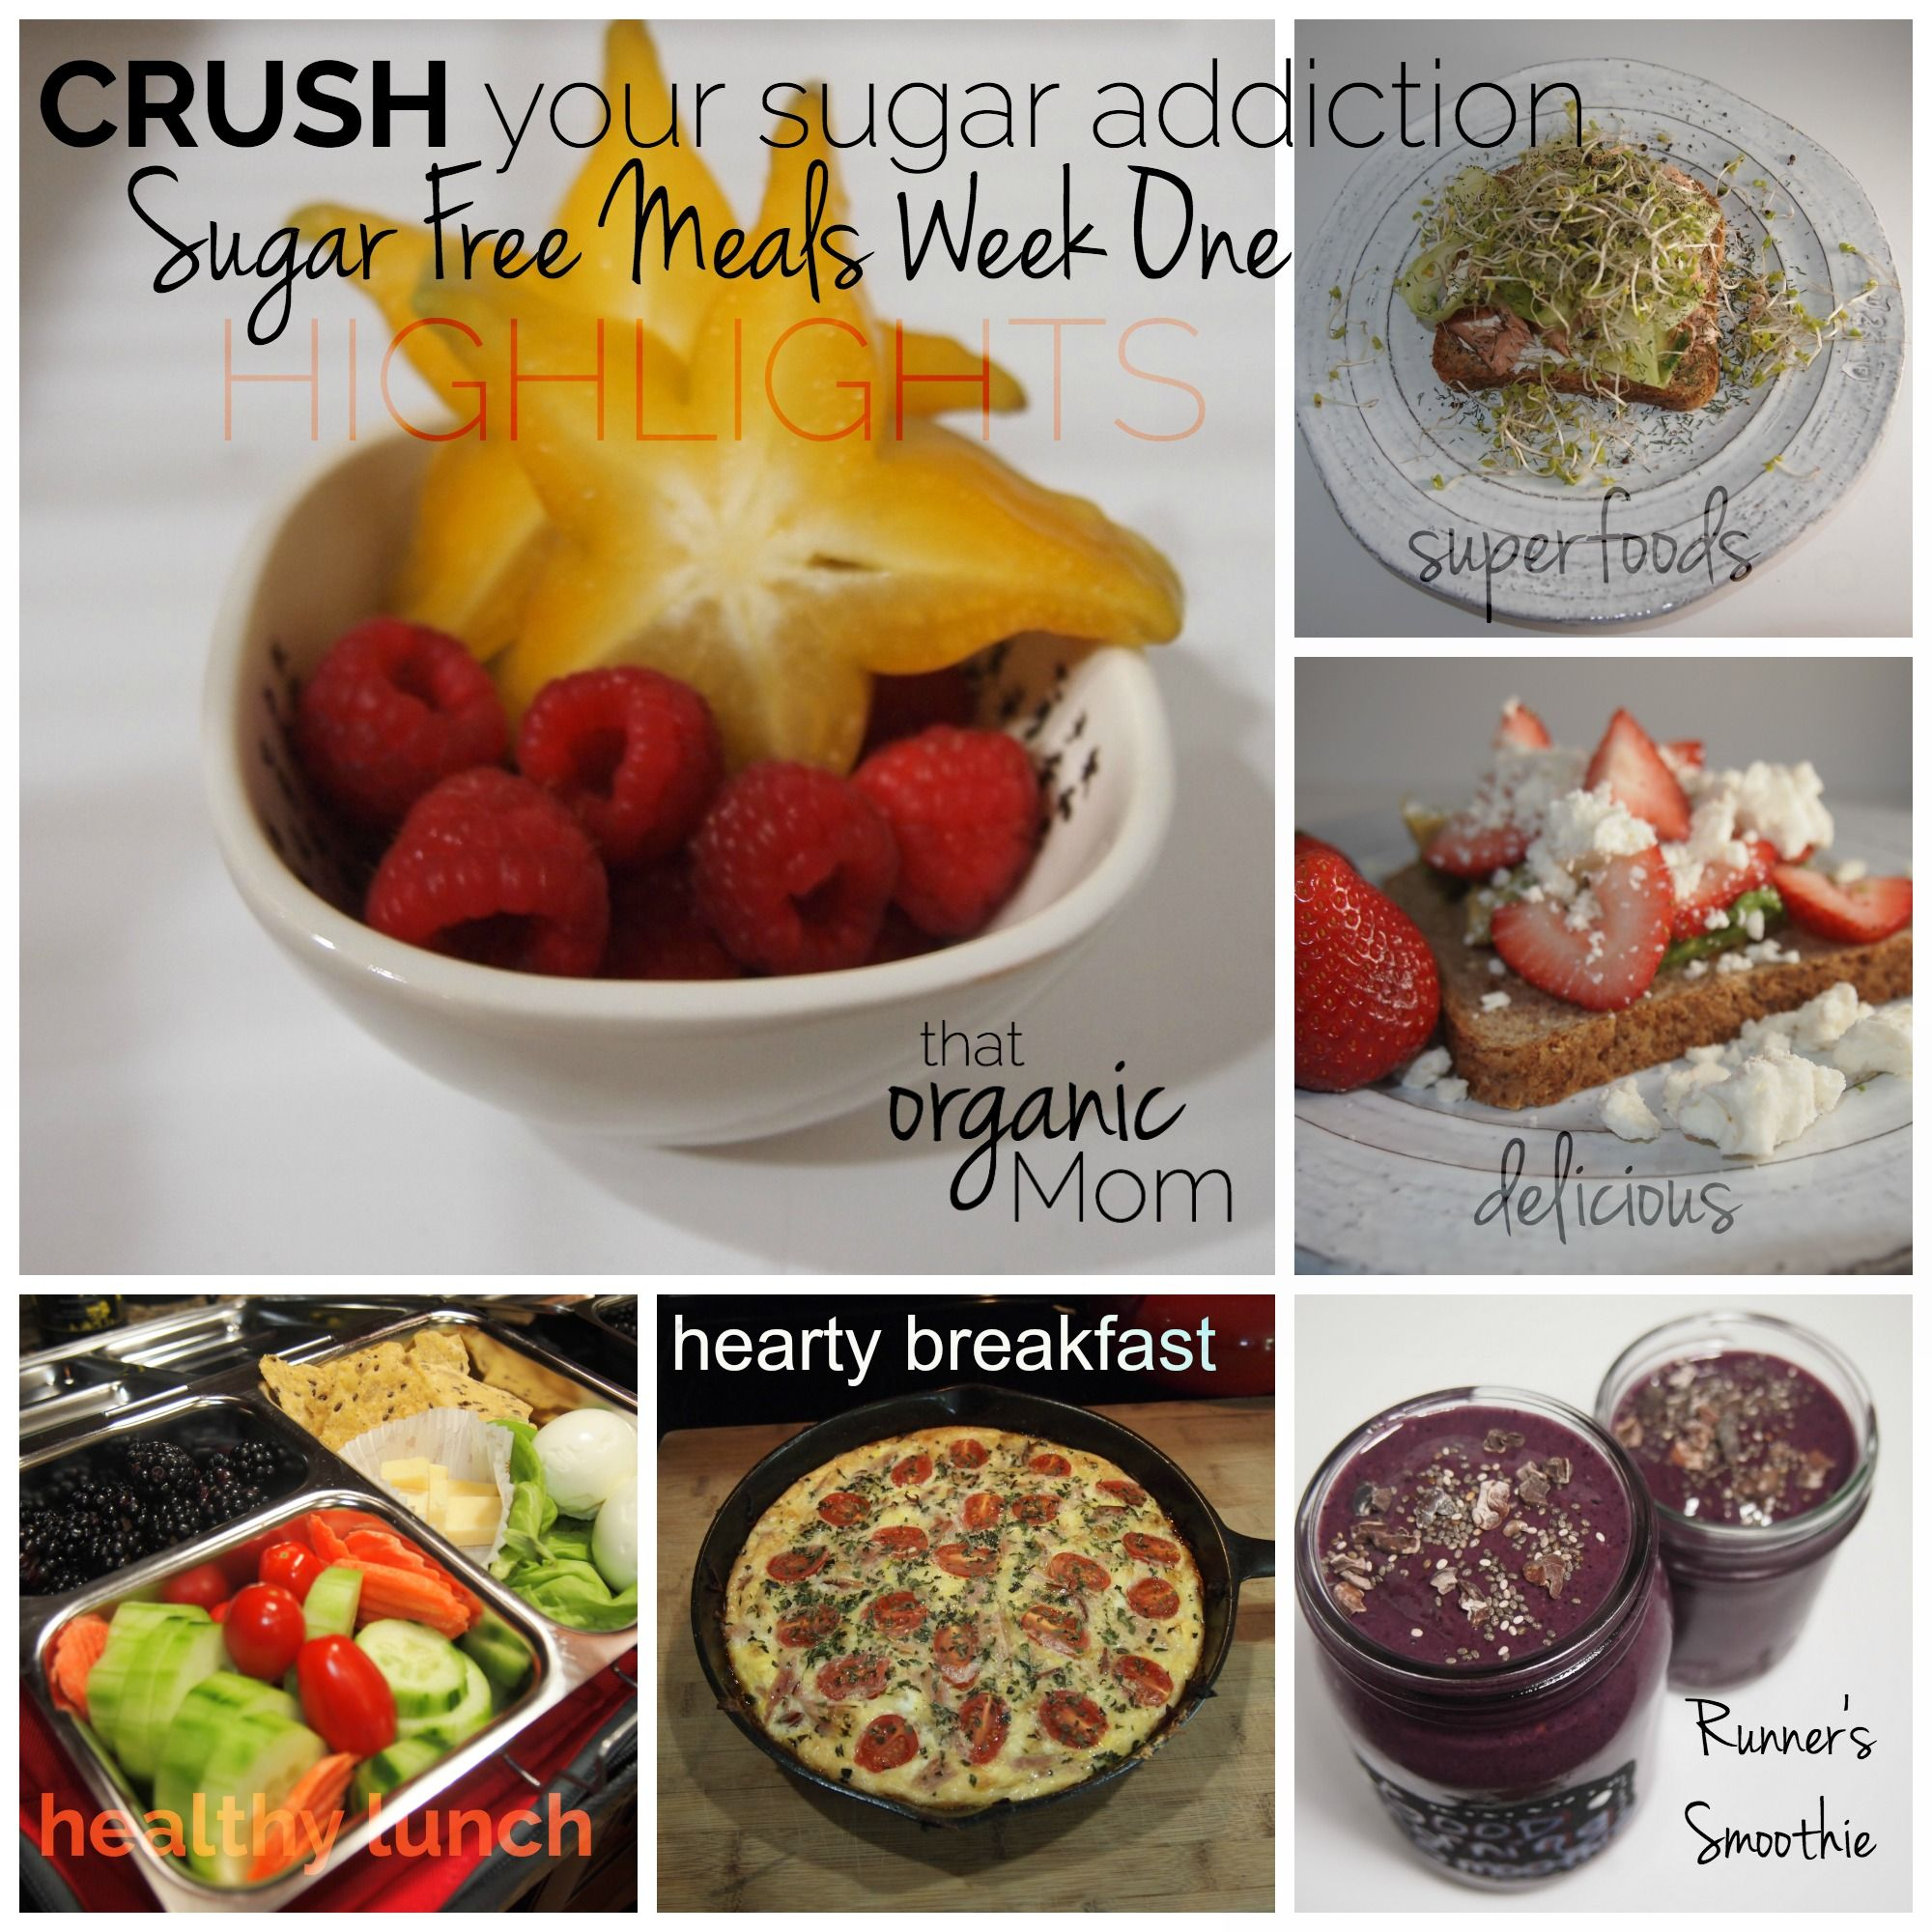 Highlights of our first week Crushing the Sugar Addiction. Looking forward to week 2! yessssssssssssss #sugarfree #sugaraddiction #sugarcravings #sugarbuster